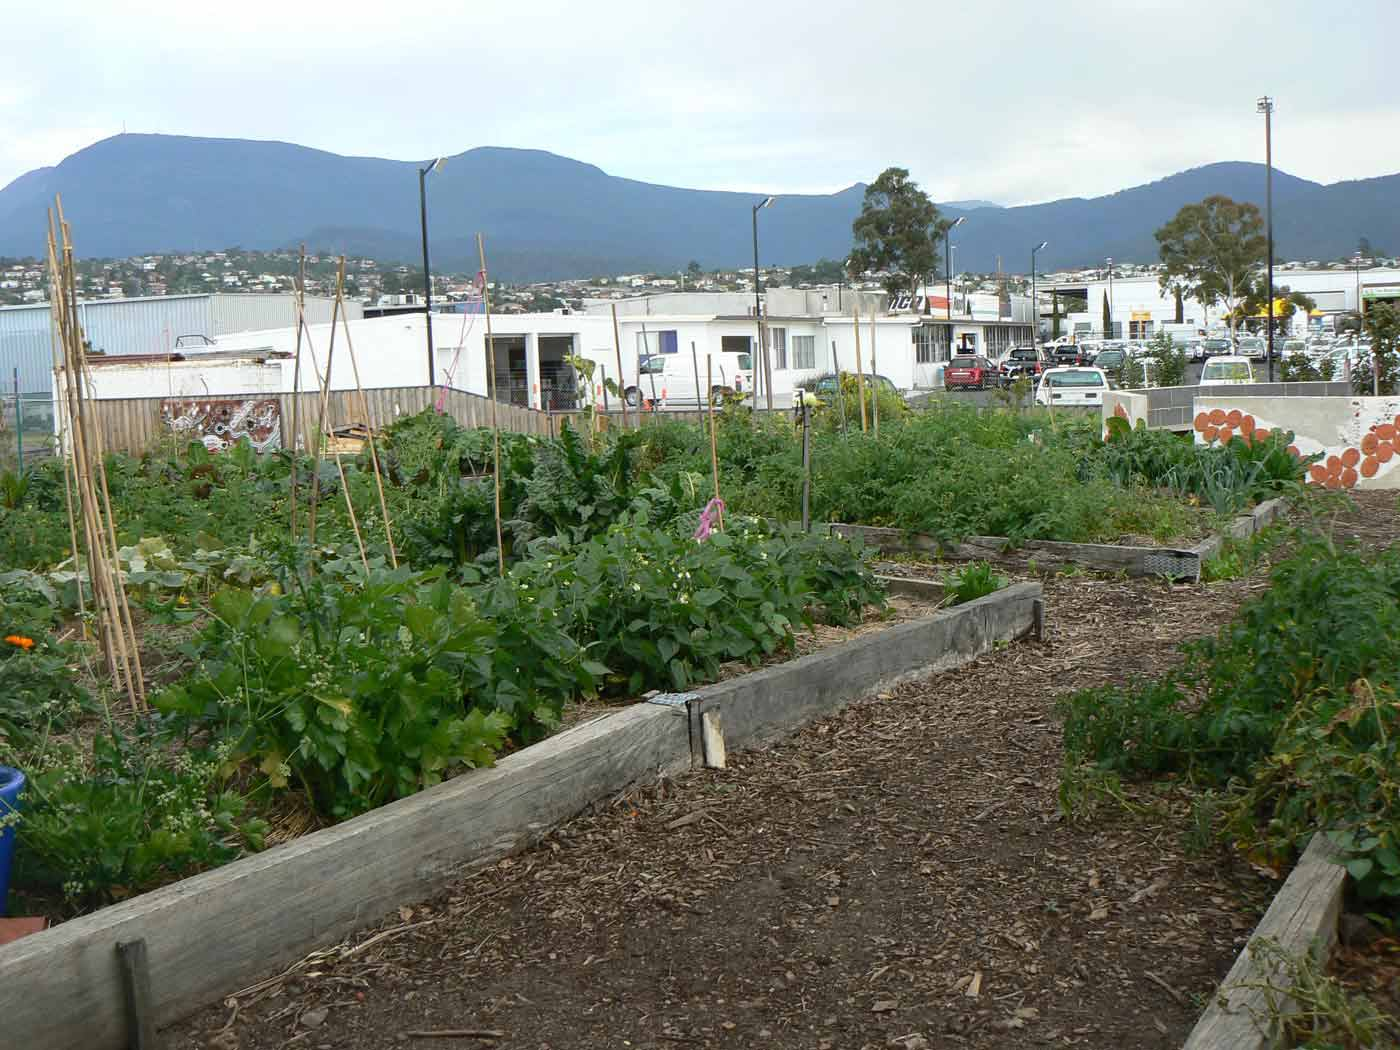 Colour photo of a vegetable garden adjacent to commercial buildings and mountains in the distance.